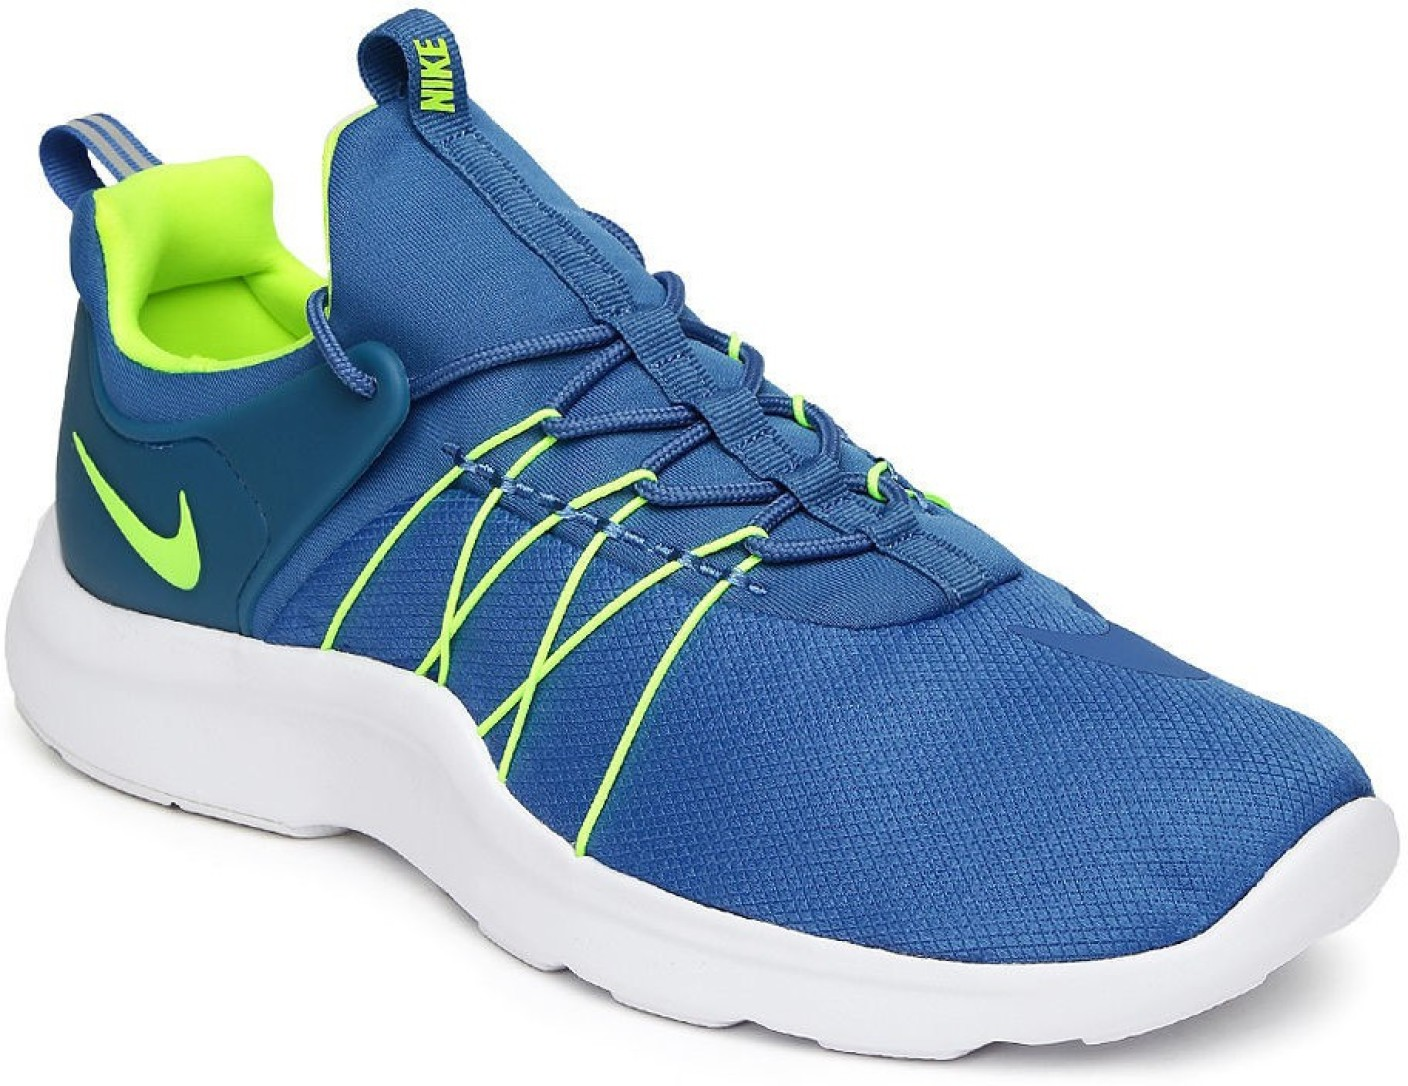 new style c9fca e3578 ... official store nike darwin running training shoes olive green 819959  301 womens size 8 blue white